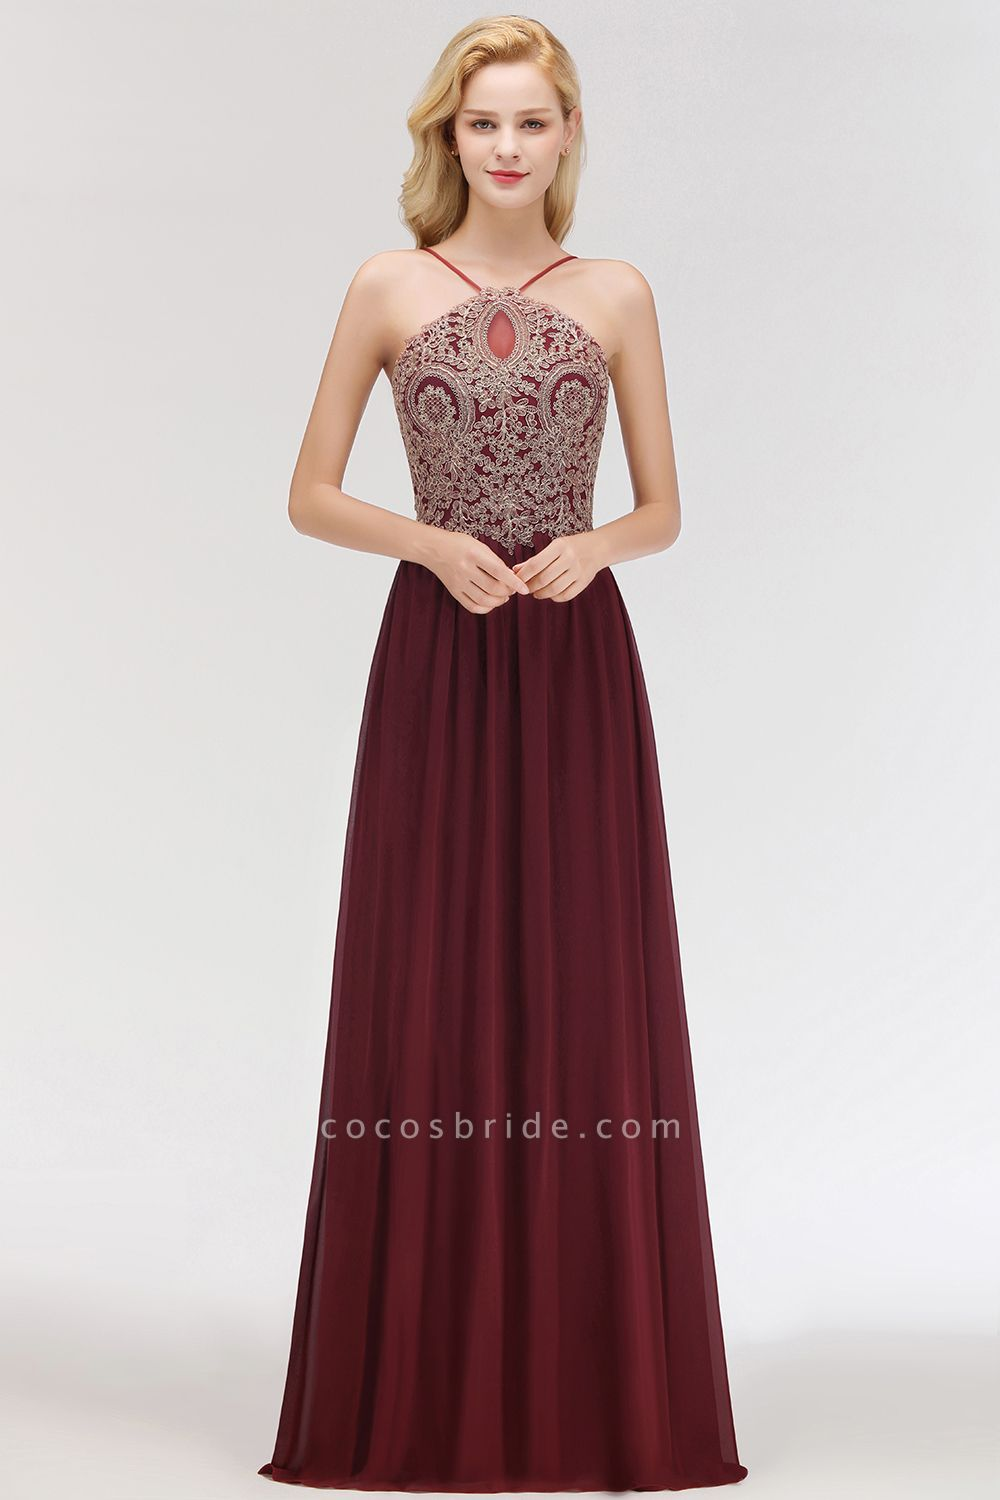 A-Line Chiffon Spaghetti-Straps Sleeveless Backless Floor-Length Bridesmaid Dress with Appliques